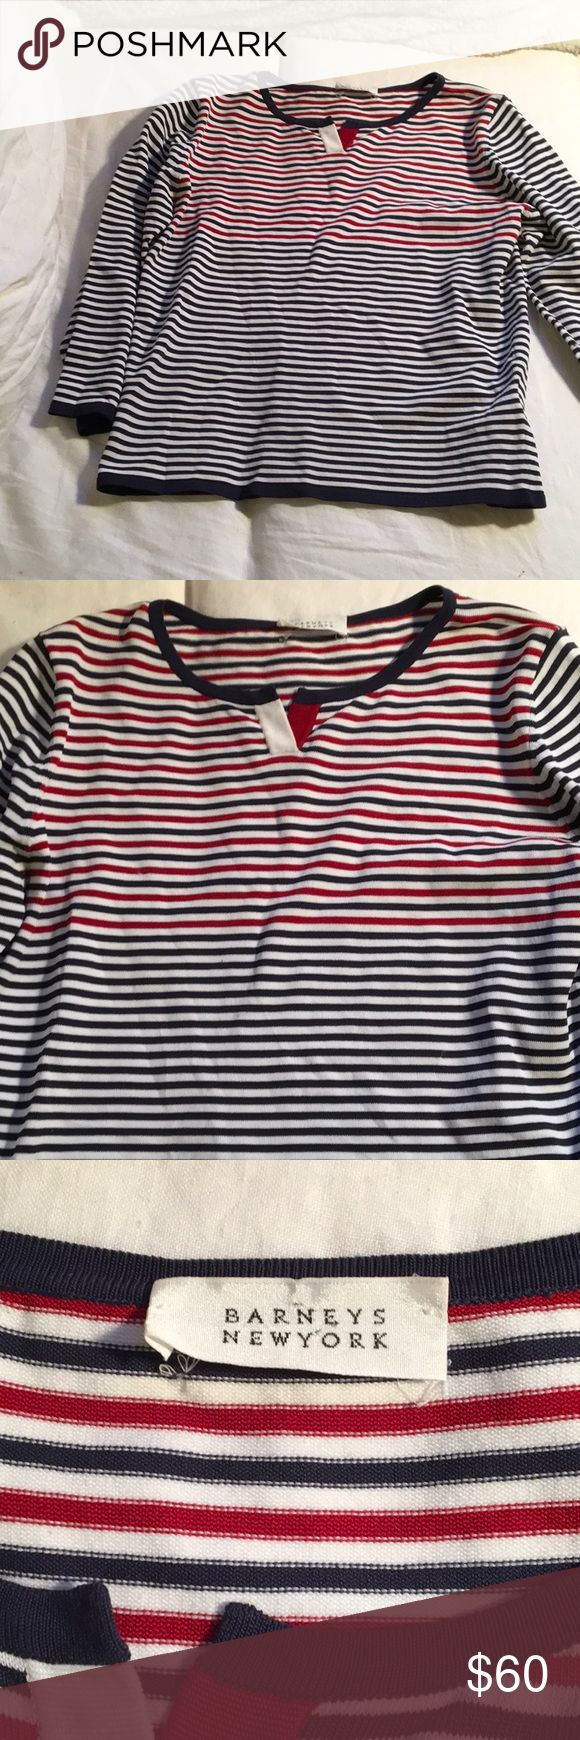 "Barneys New York Luxury Striped Nautical Top This is a very cute top, you, as you can see in the photos, BUT the real seller is the incredible softness 😊 it can only be described as ""dreamy"". This is an excellent top, Classic red, white, and blue stripes, perfect for a walk along the water. 3/4 sleeve, and Made in Italy. Size medium, plenty of stretch-  Flat: Pit to pit: 17.5"" Waist: 16.25"" Total length: 21"" Barneys New York Tops Blouses"